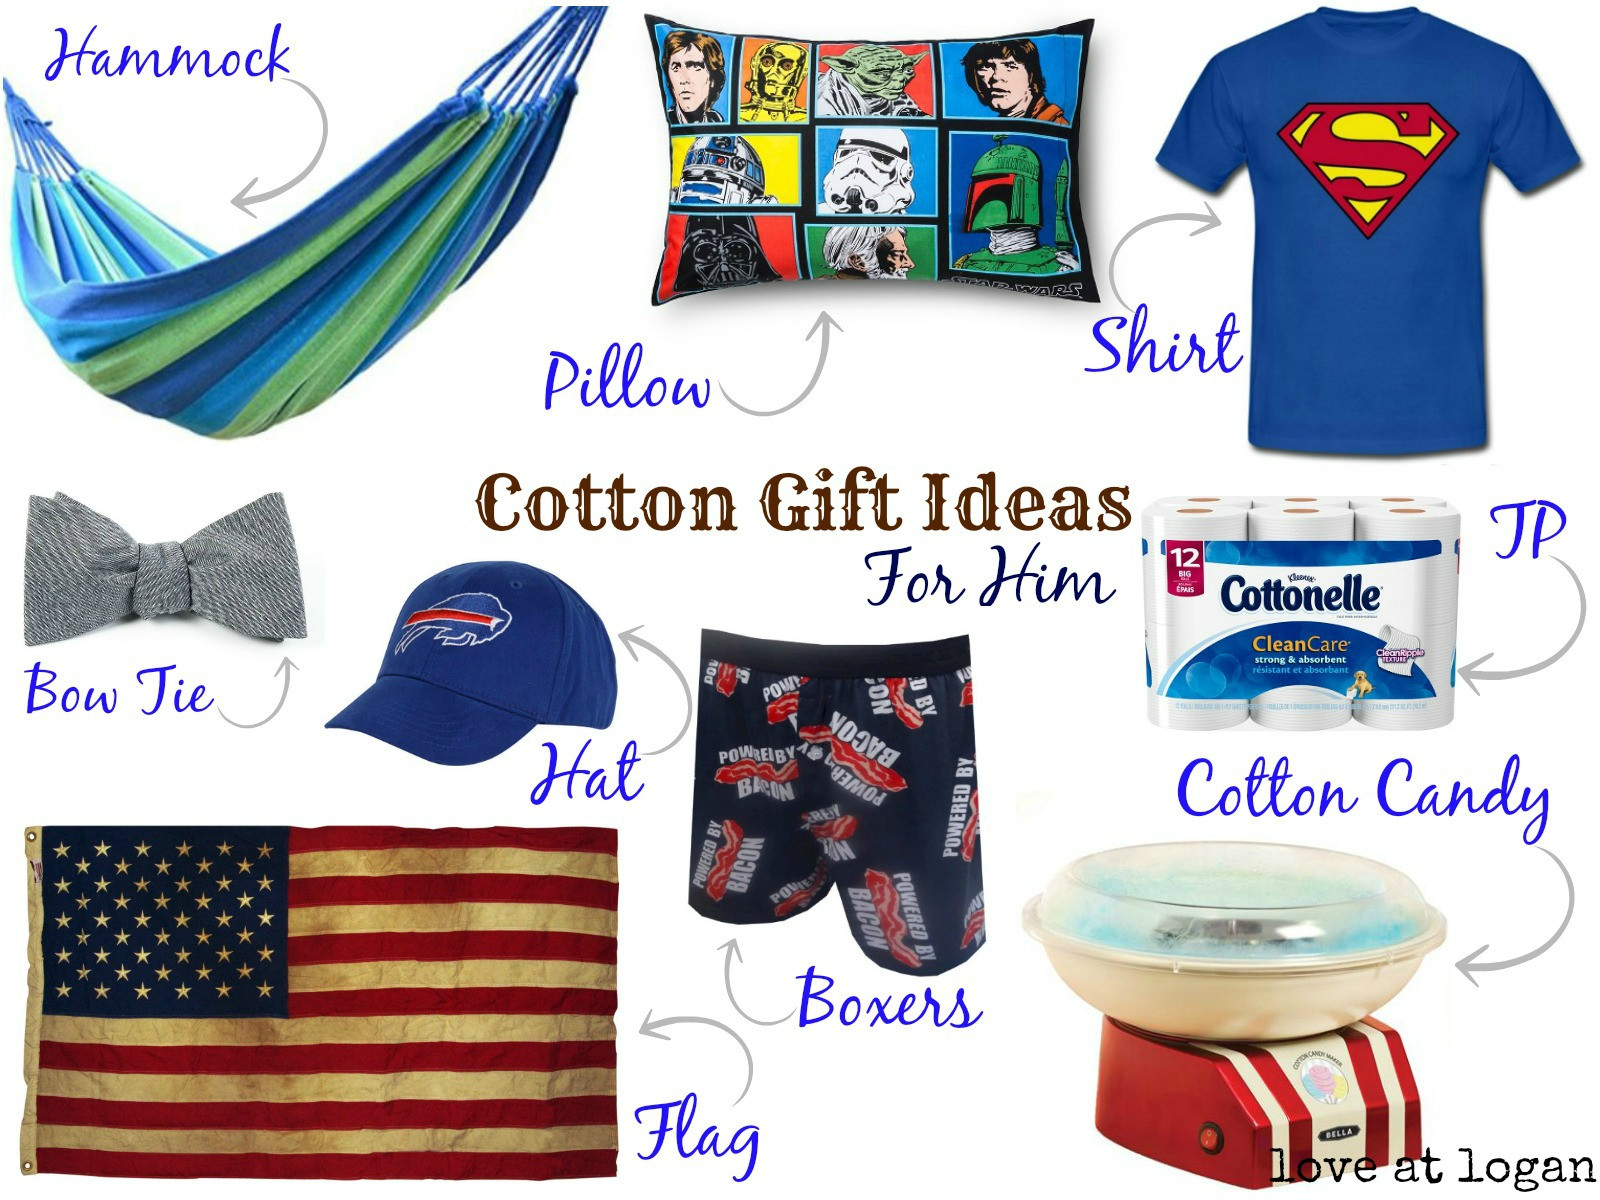 2Nd Anniversary Gift Ideas For Him  Love at Logan Second Anniversary Cotton Gift Ideas